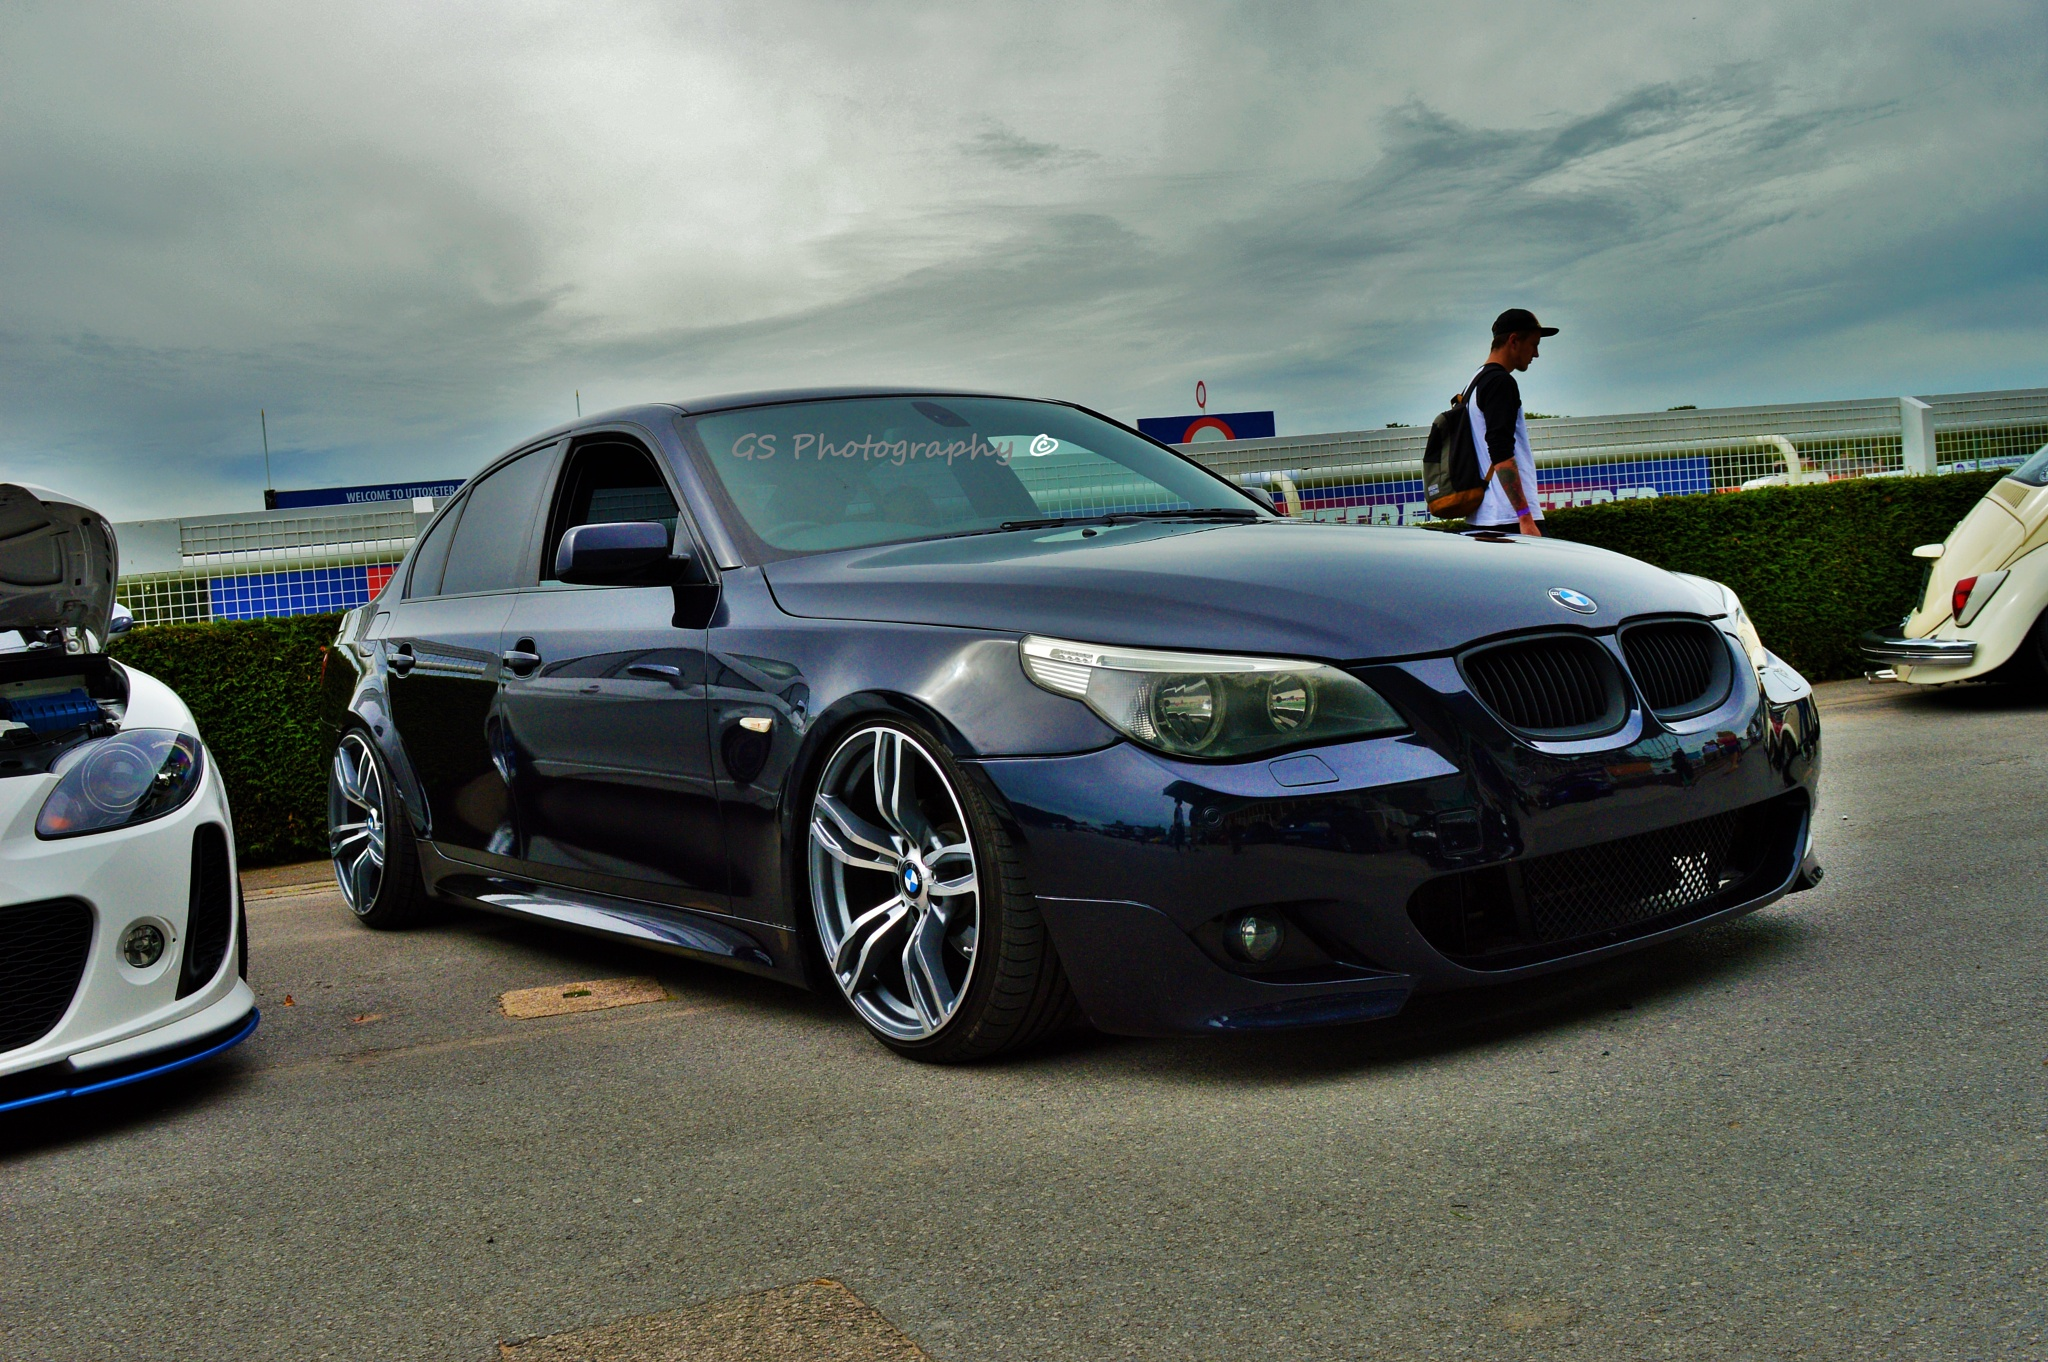 BMW 5 Series by GeorgeSmith Photography